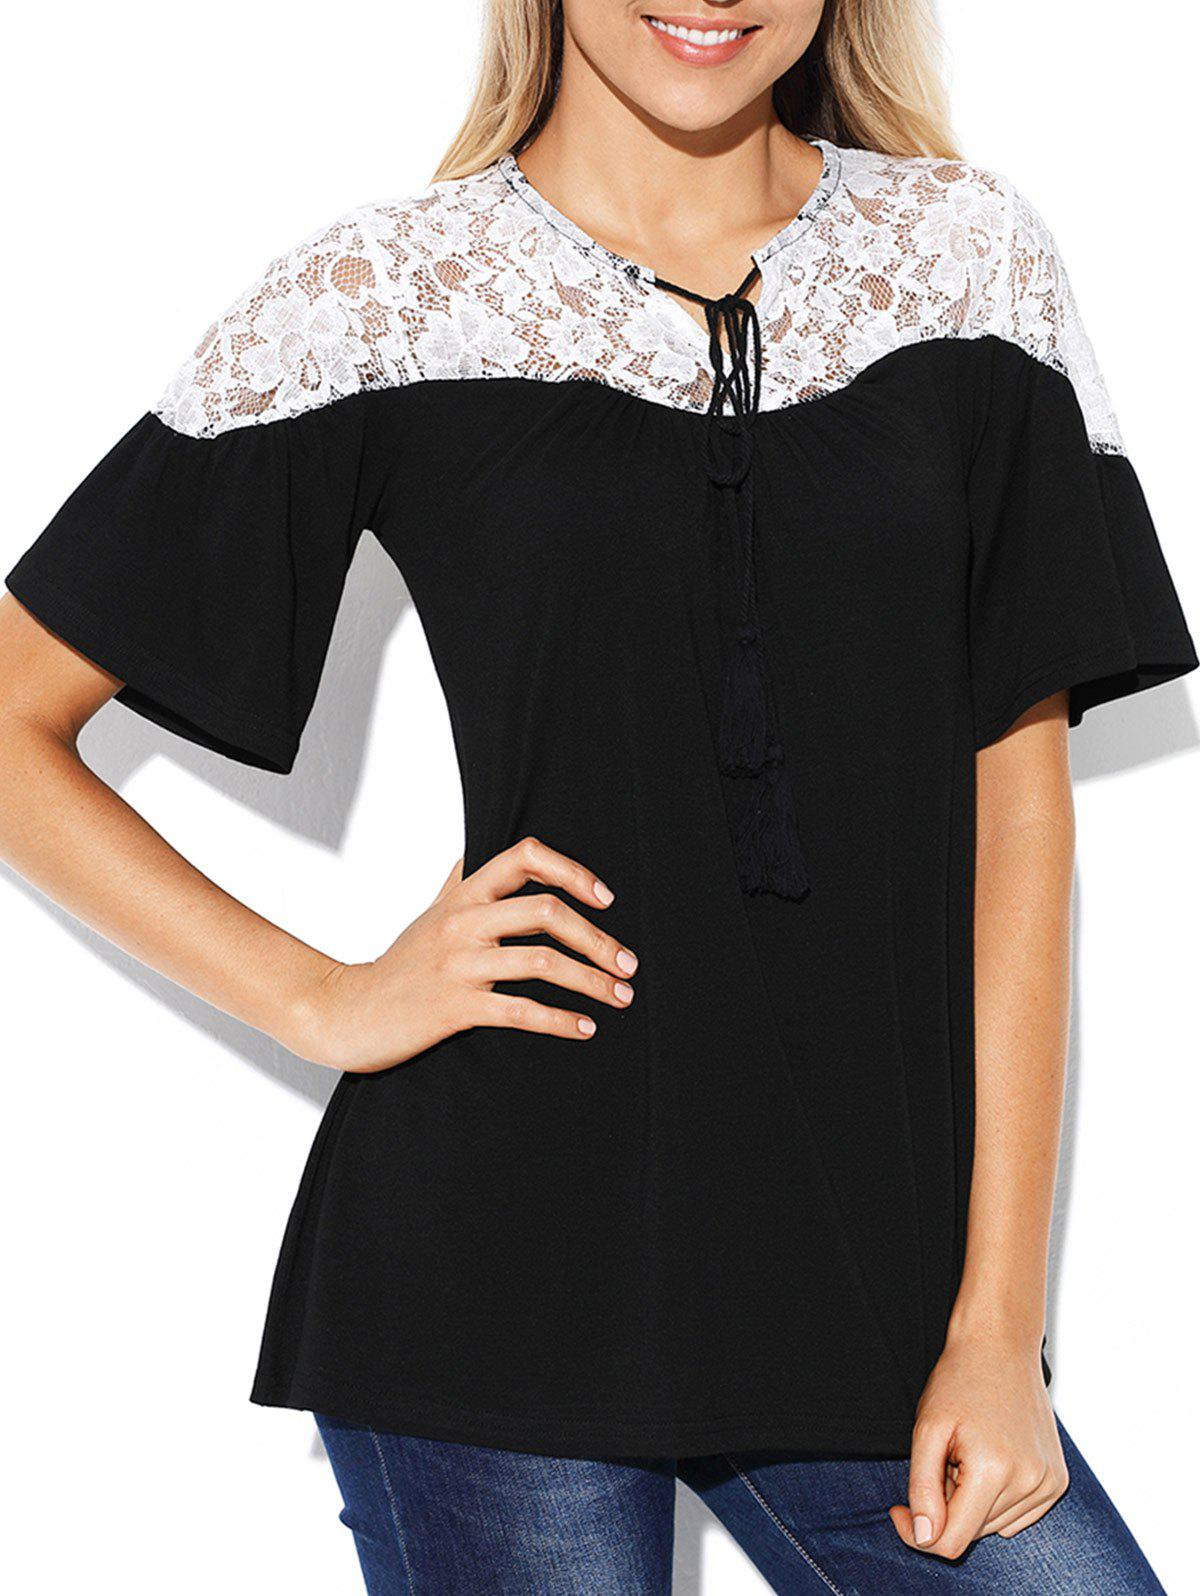 Store Lace Insert Short Sleeve Plain T-shirt